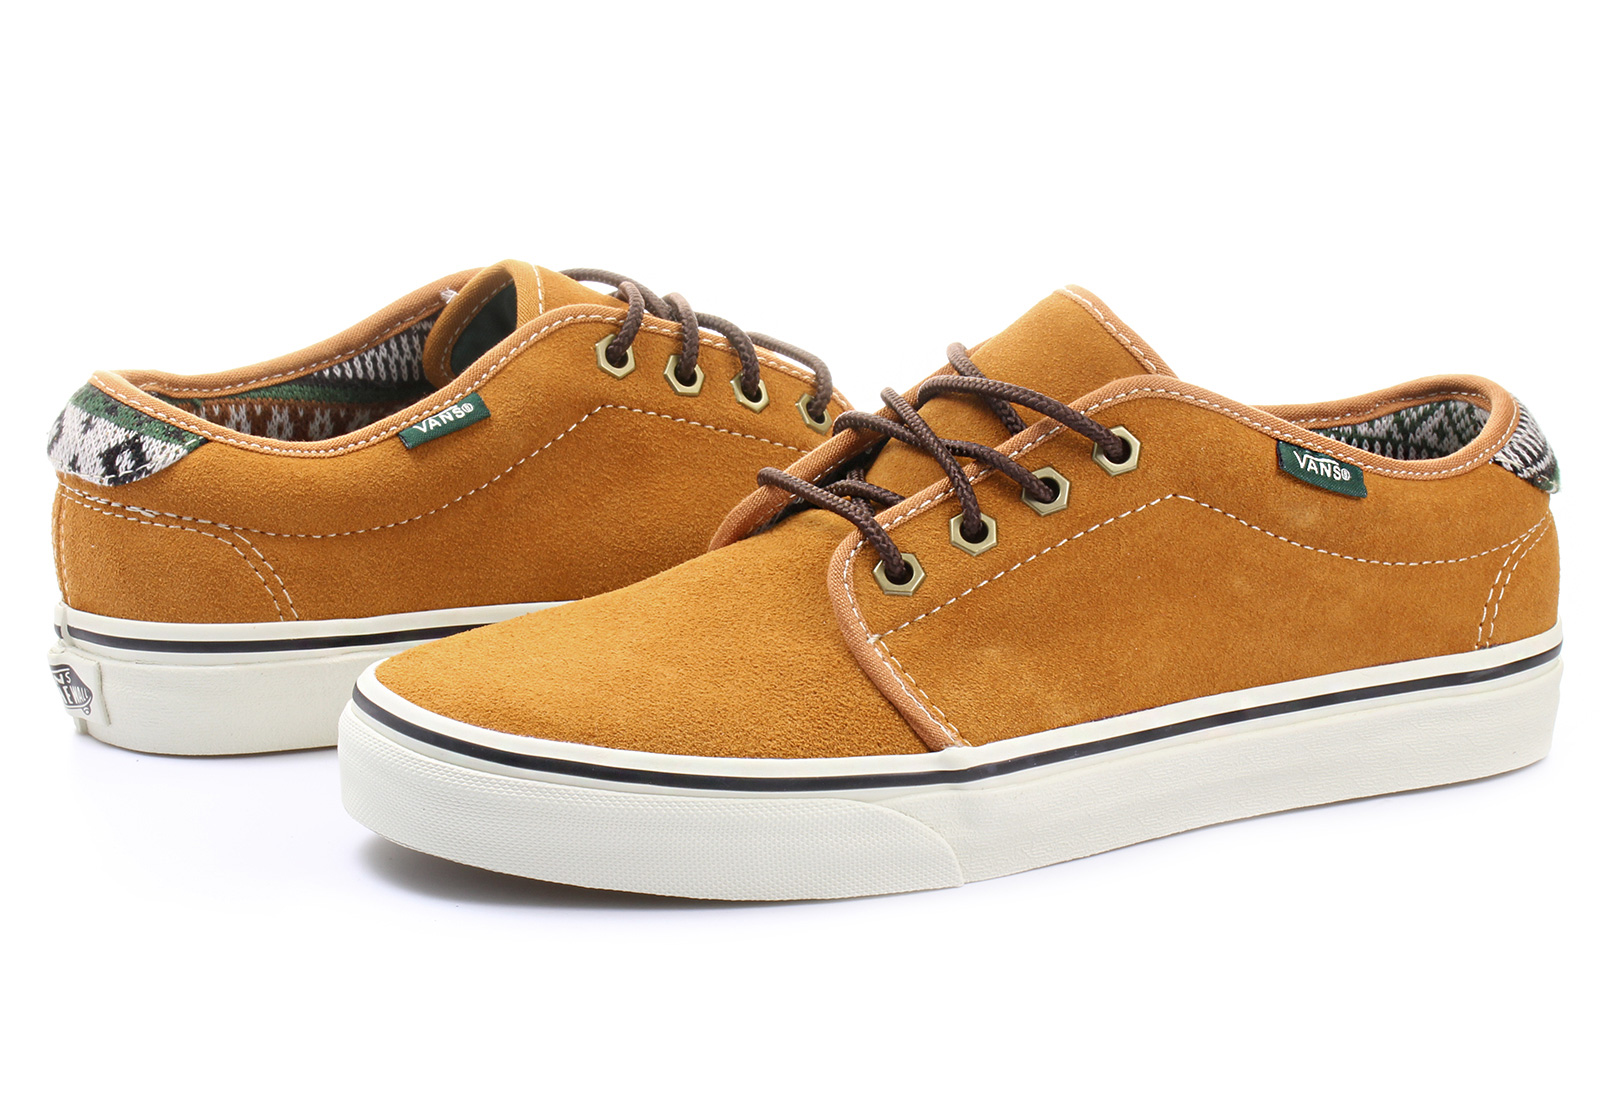 797bdf4a51 Vans Sneakers - 159 Vulcanized - vrqn8q2 - Online shop for sneakers ...